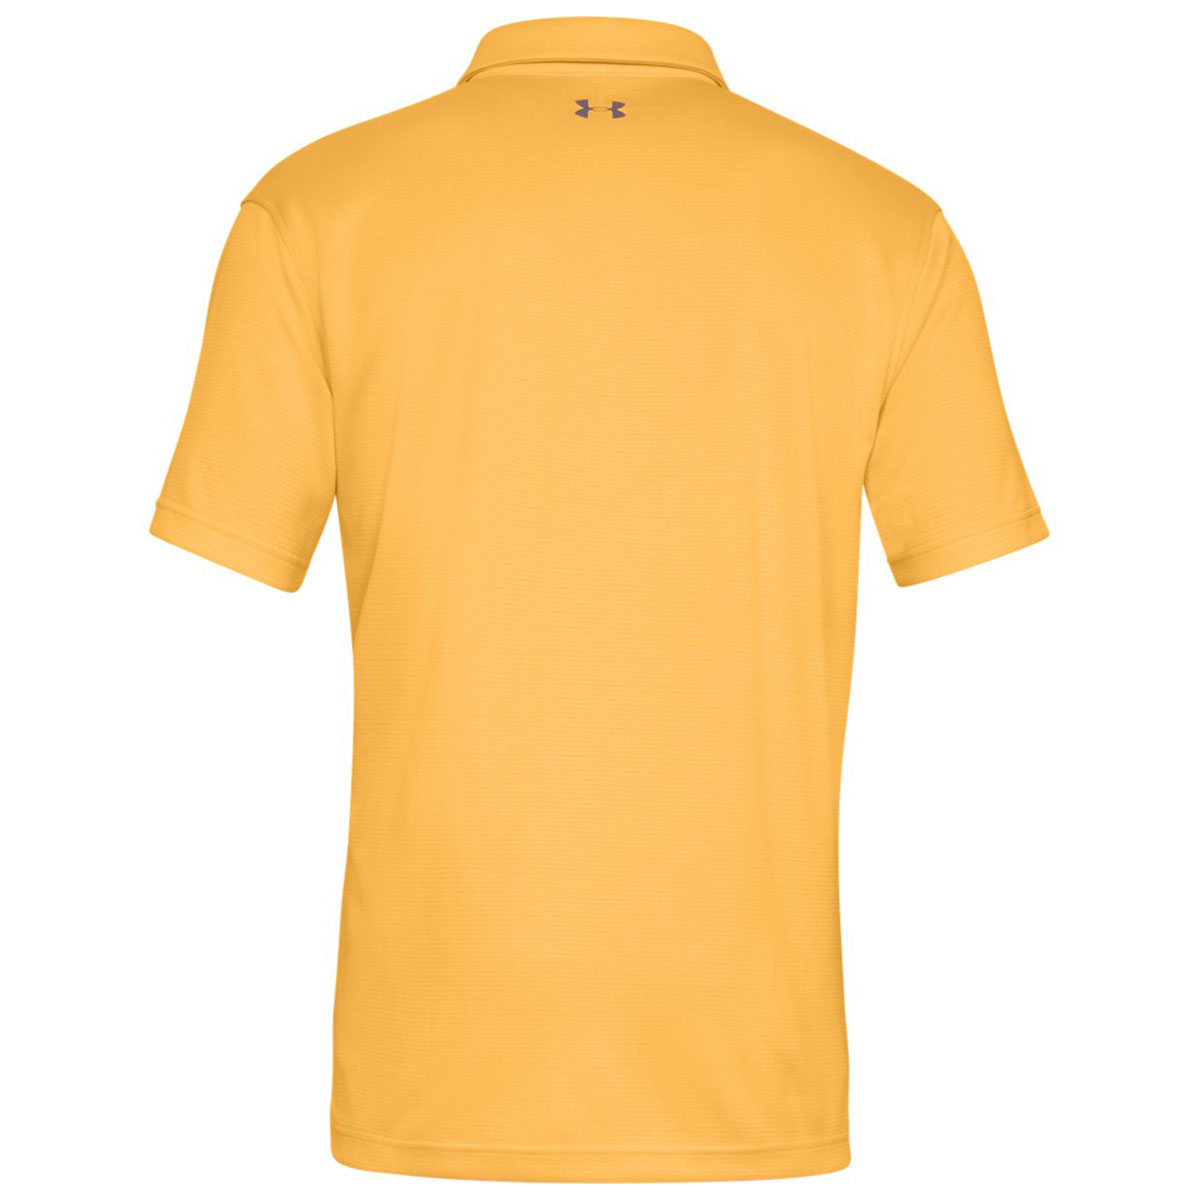 Under-Armour-Mens-2019-Golf-Tech-Wicking-Textured-Soft-Light-Polo-Shirt thumbnail 47